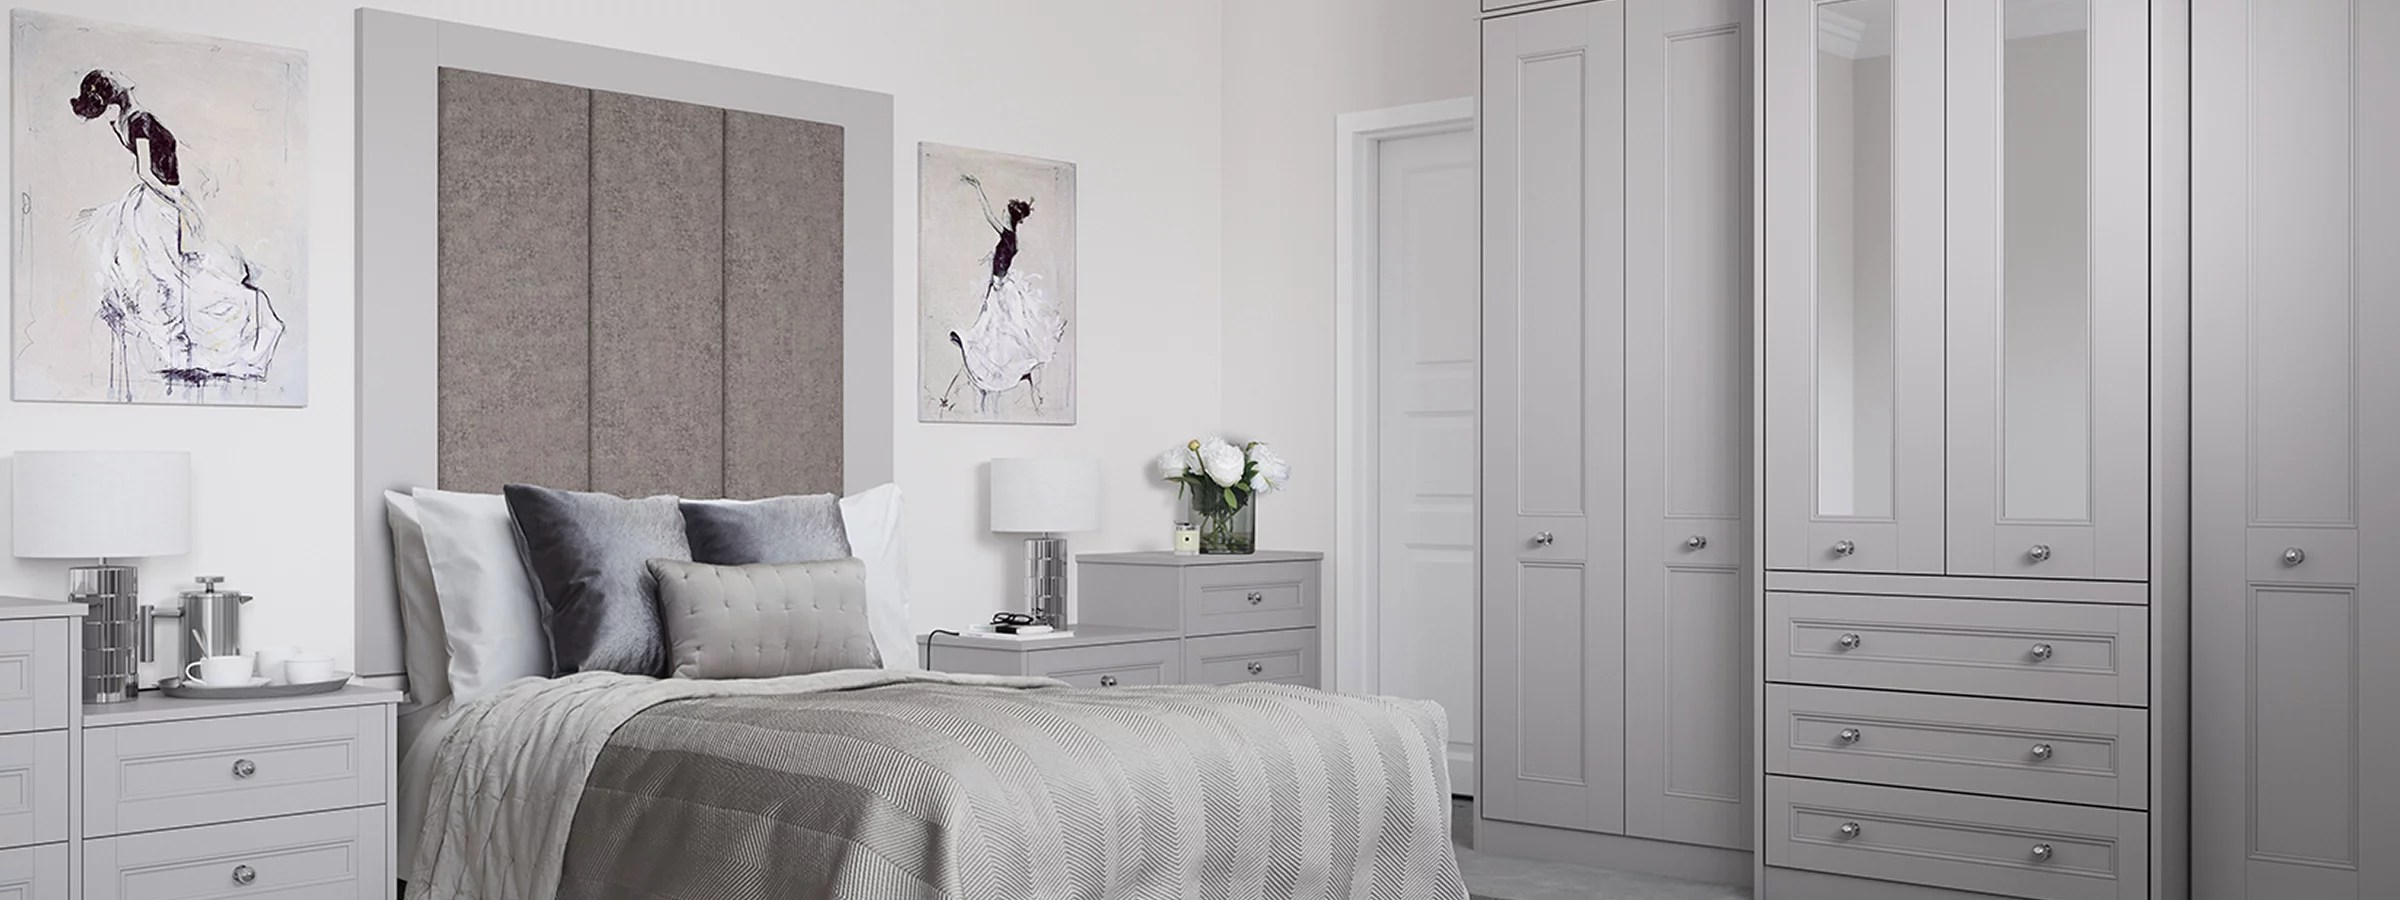 Bedroom Built In Wardrobe Designs Fitted Bedroom Service